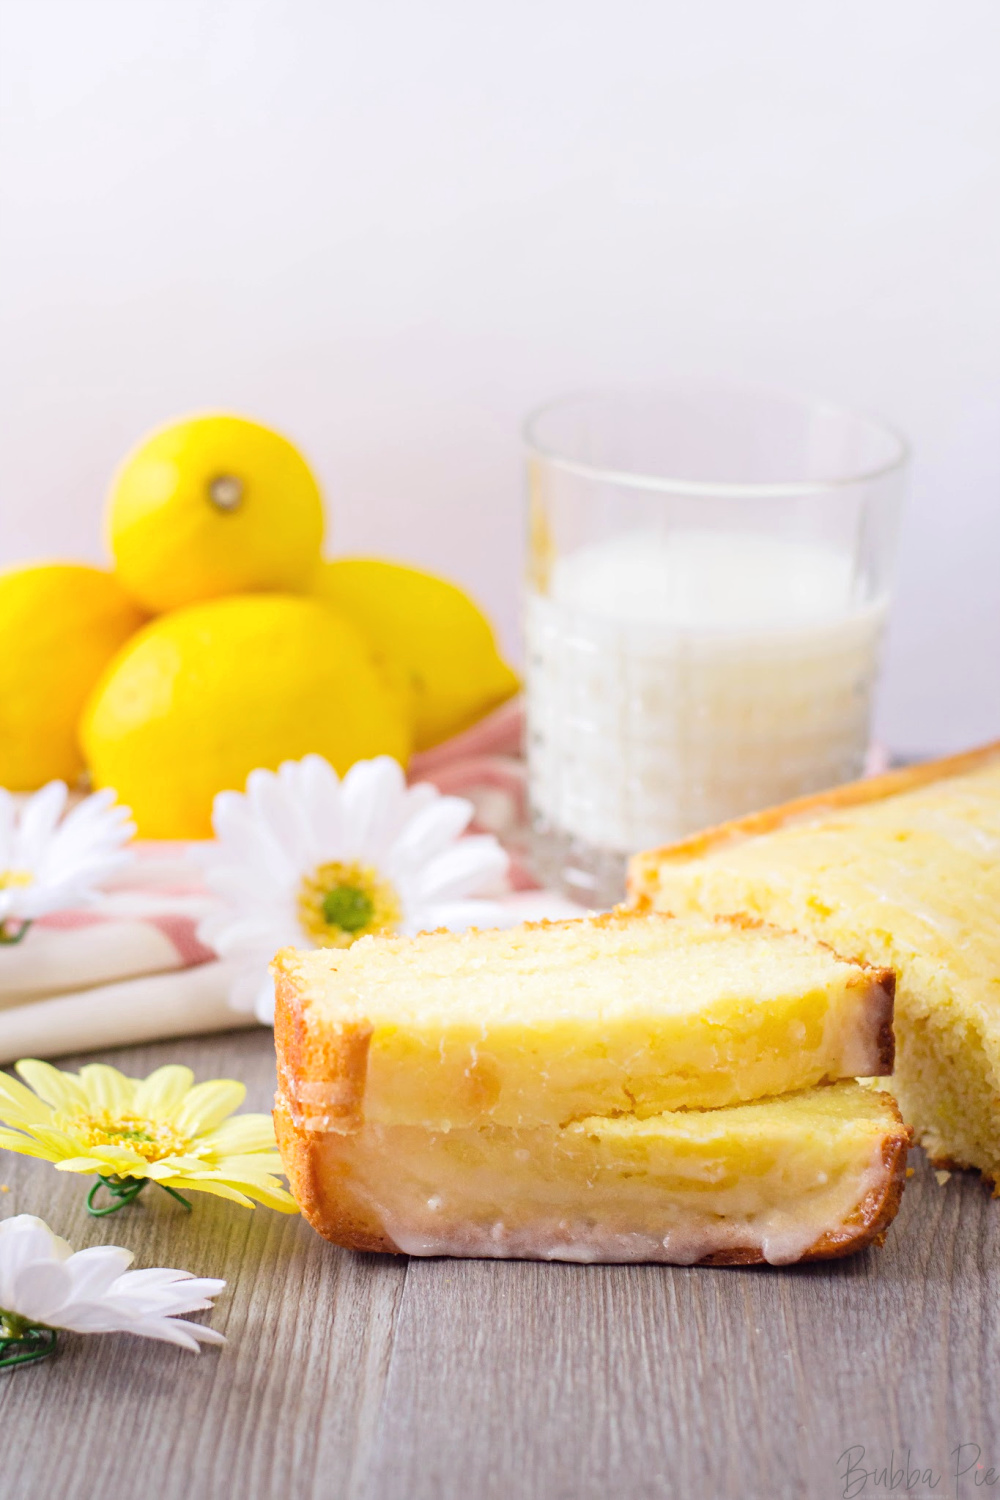 Lemon Loaf Cake served as dessert with a glass of milk.